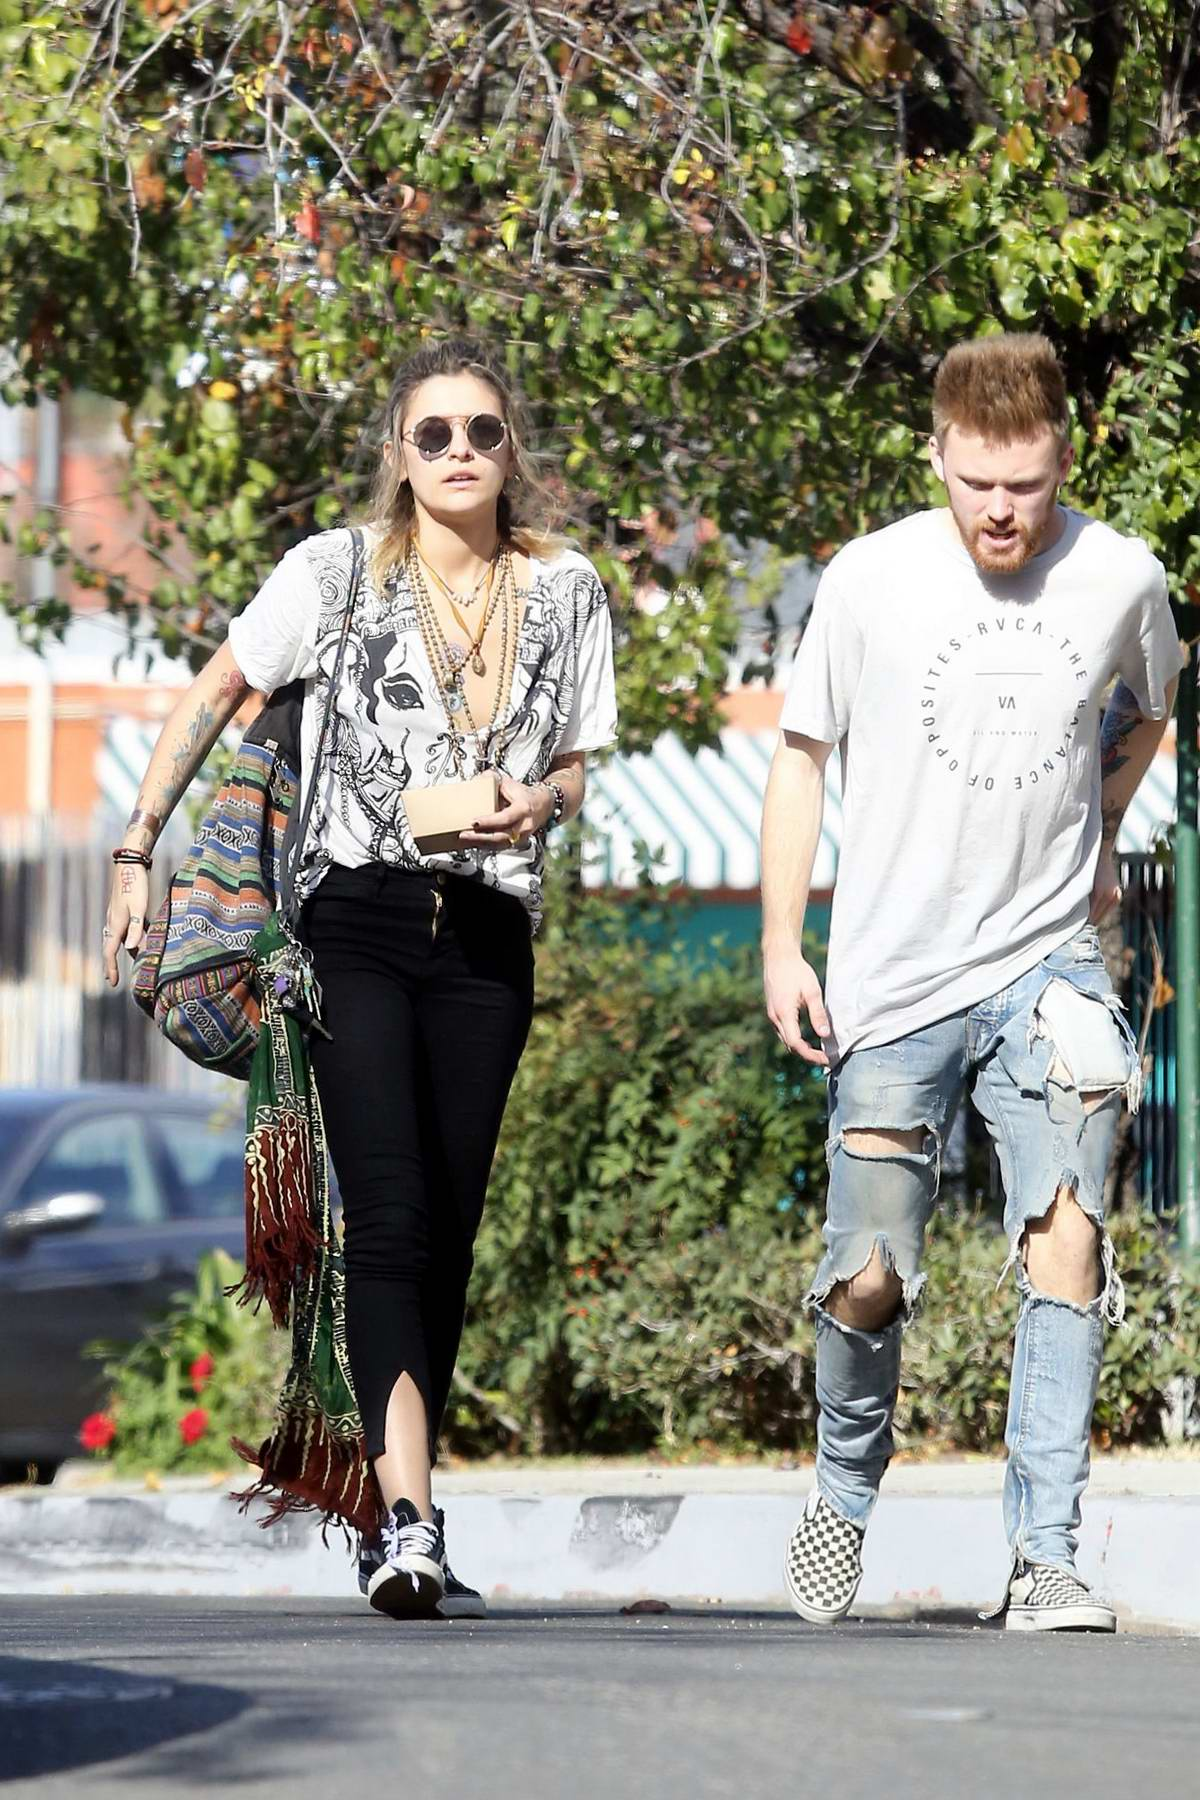 Paris Jackson and ex-boyfriend Chester Castellaw spotted while out for lunch in Woodland Hills, California